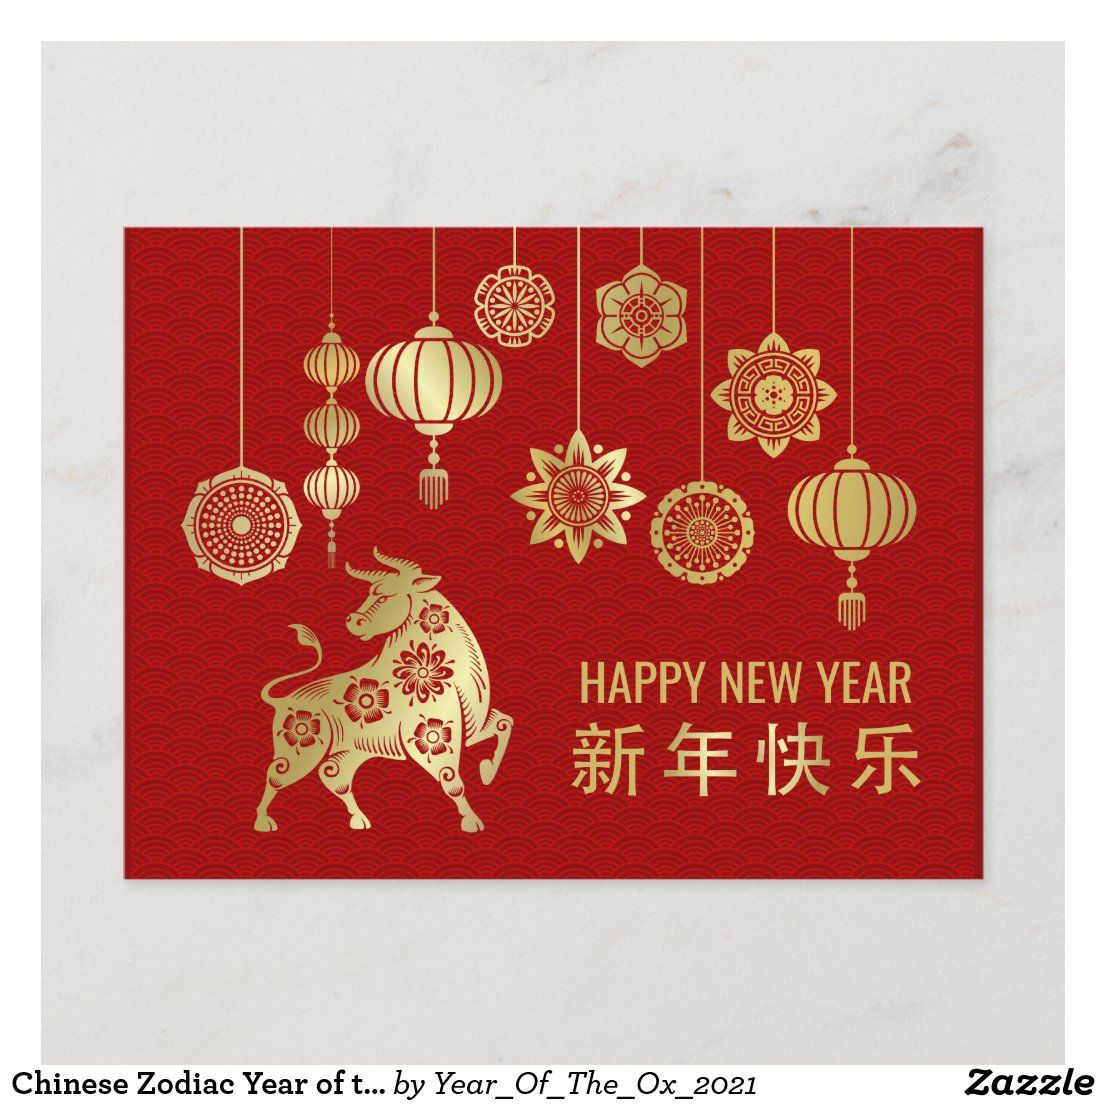 Chinese Zodiac Year of the Ox 2021 Holiday Postcard